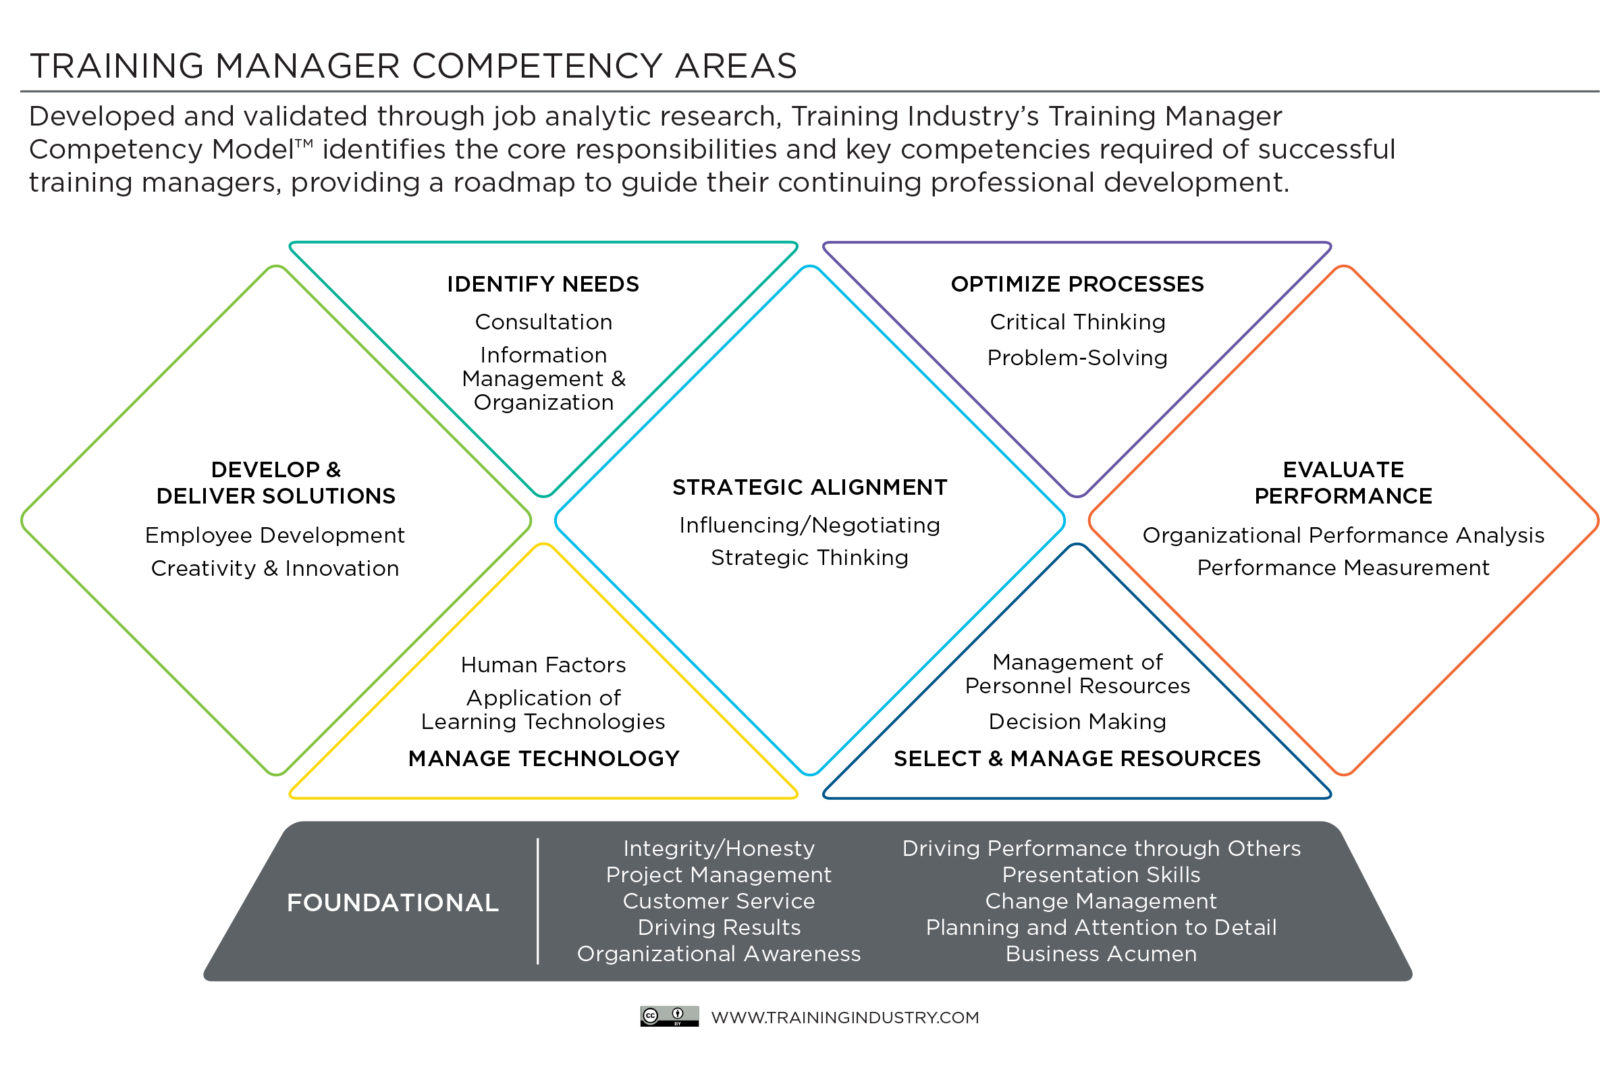 Training Manager Competency Model